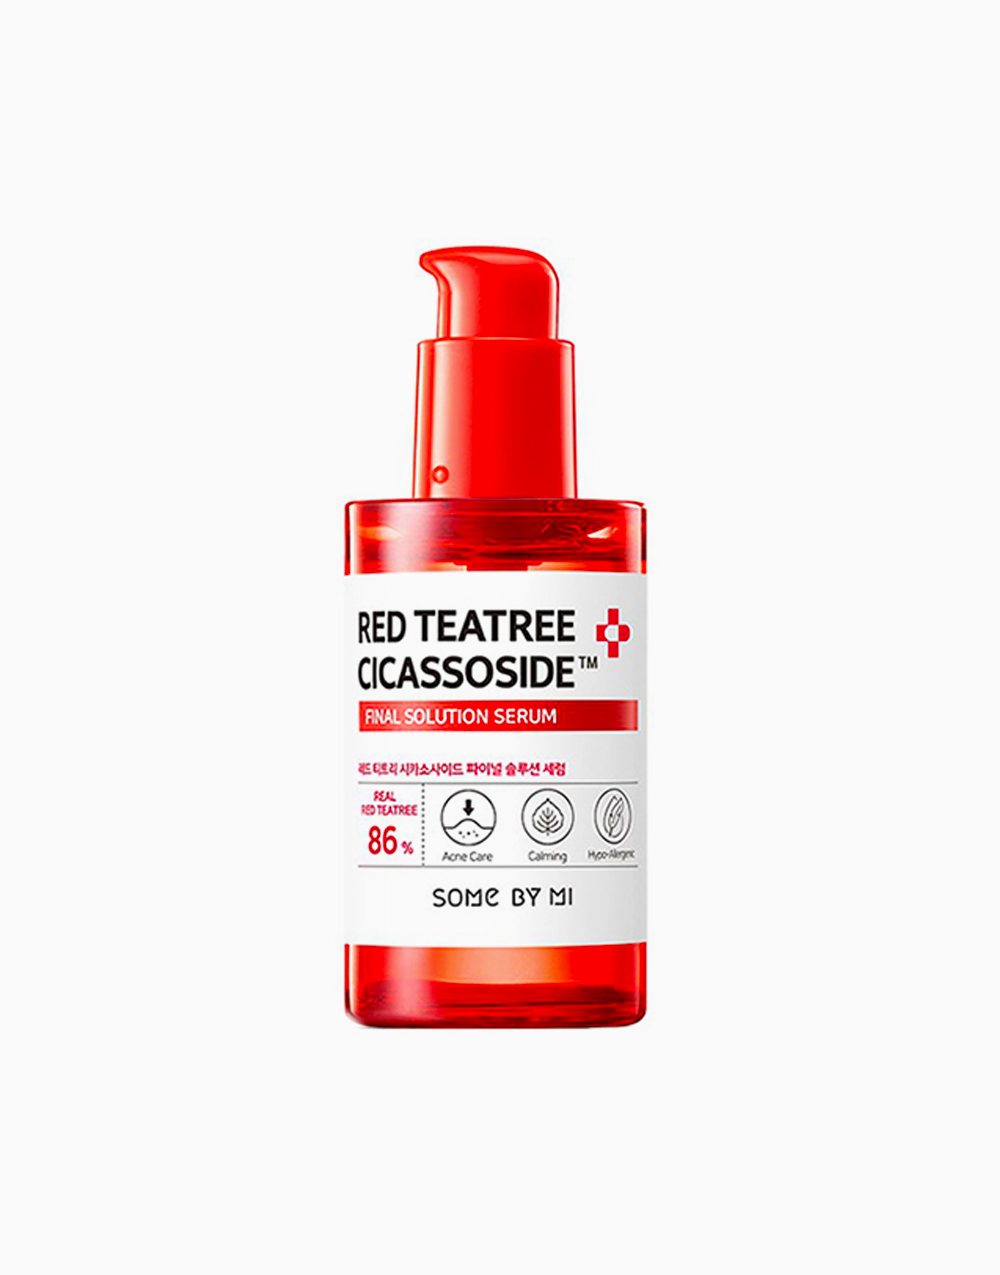 Red Teatree Cicassoside Derma Solution Serum (50ml) by Some By Mi